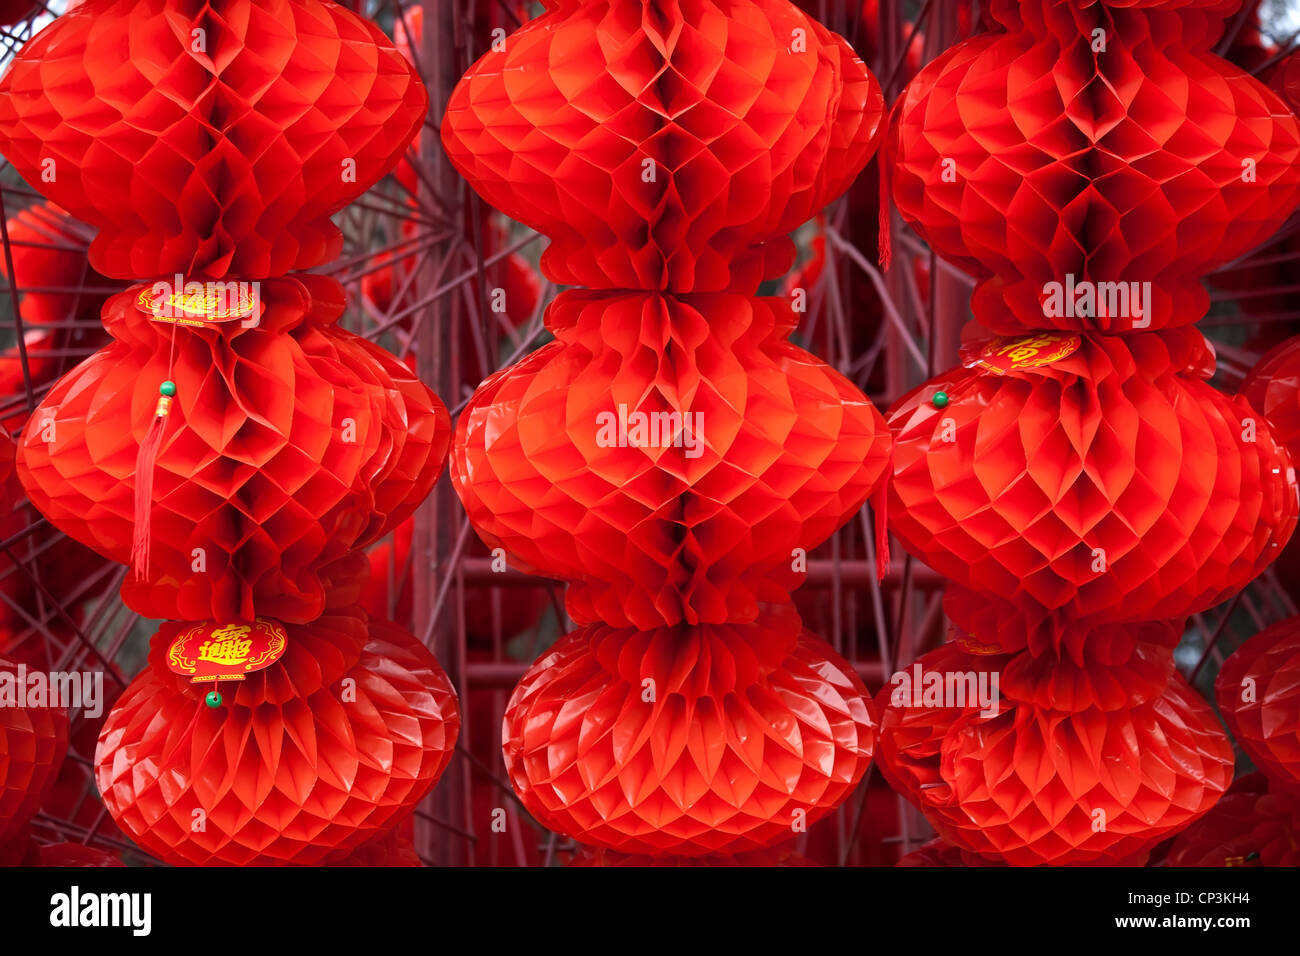 Lucky Red Lanterns Chinese Lunar New Year Decorations Ditan Park, Beijing, China Stock Photo